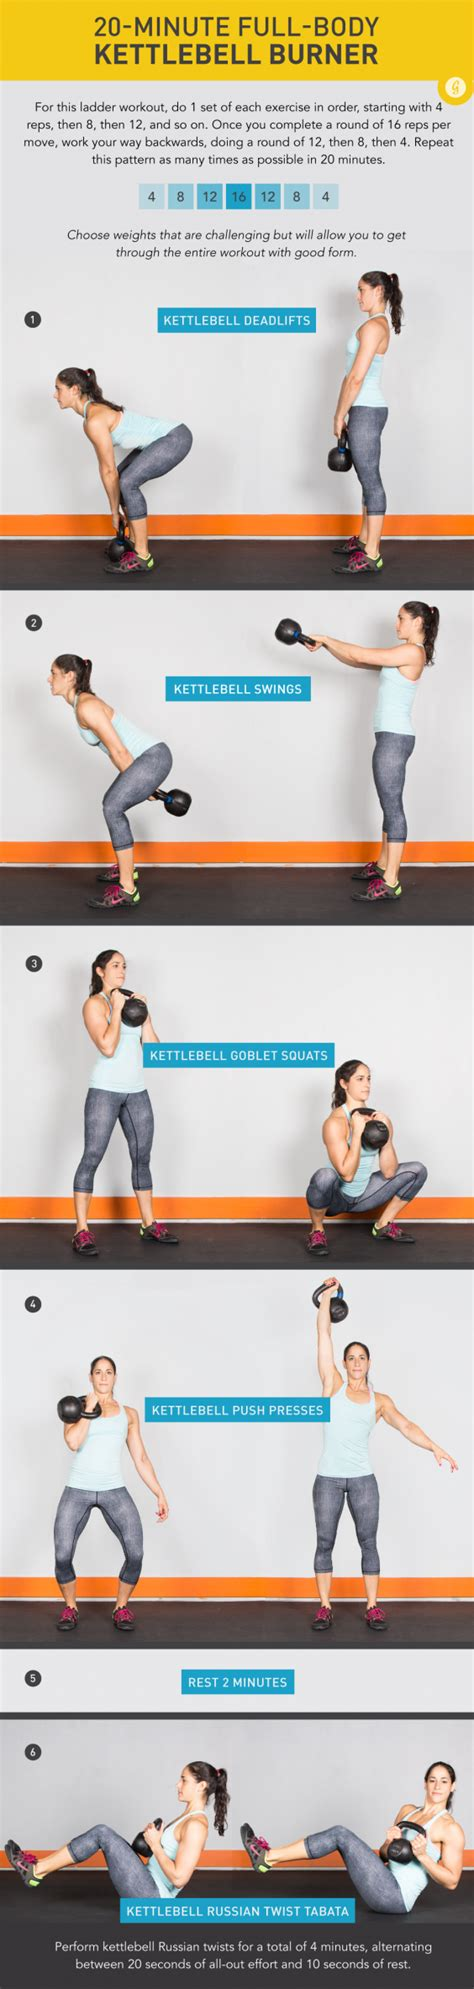 kettlebell workout body minute exercises routine whole bell dumbbell quick kettle workouts total exercise kettlebells min ball greatist fitness bells